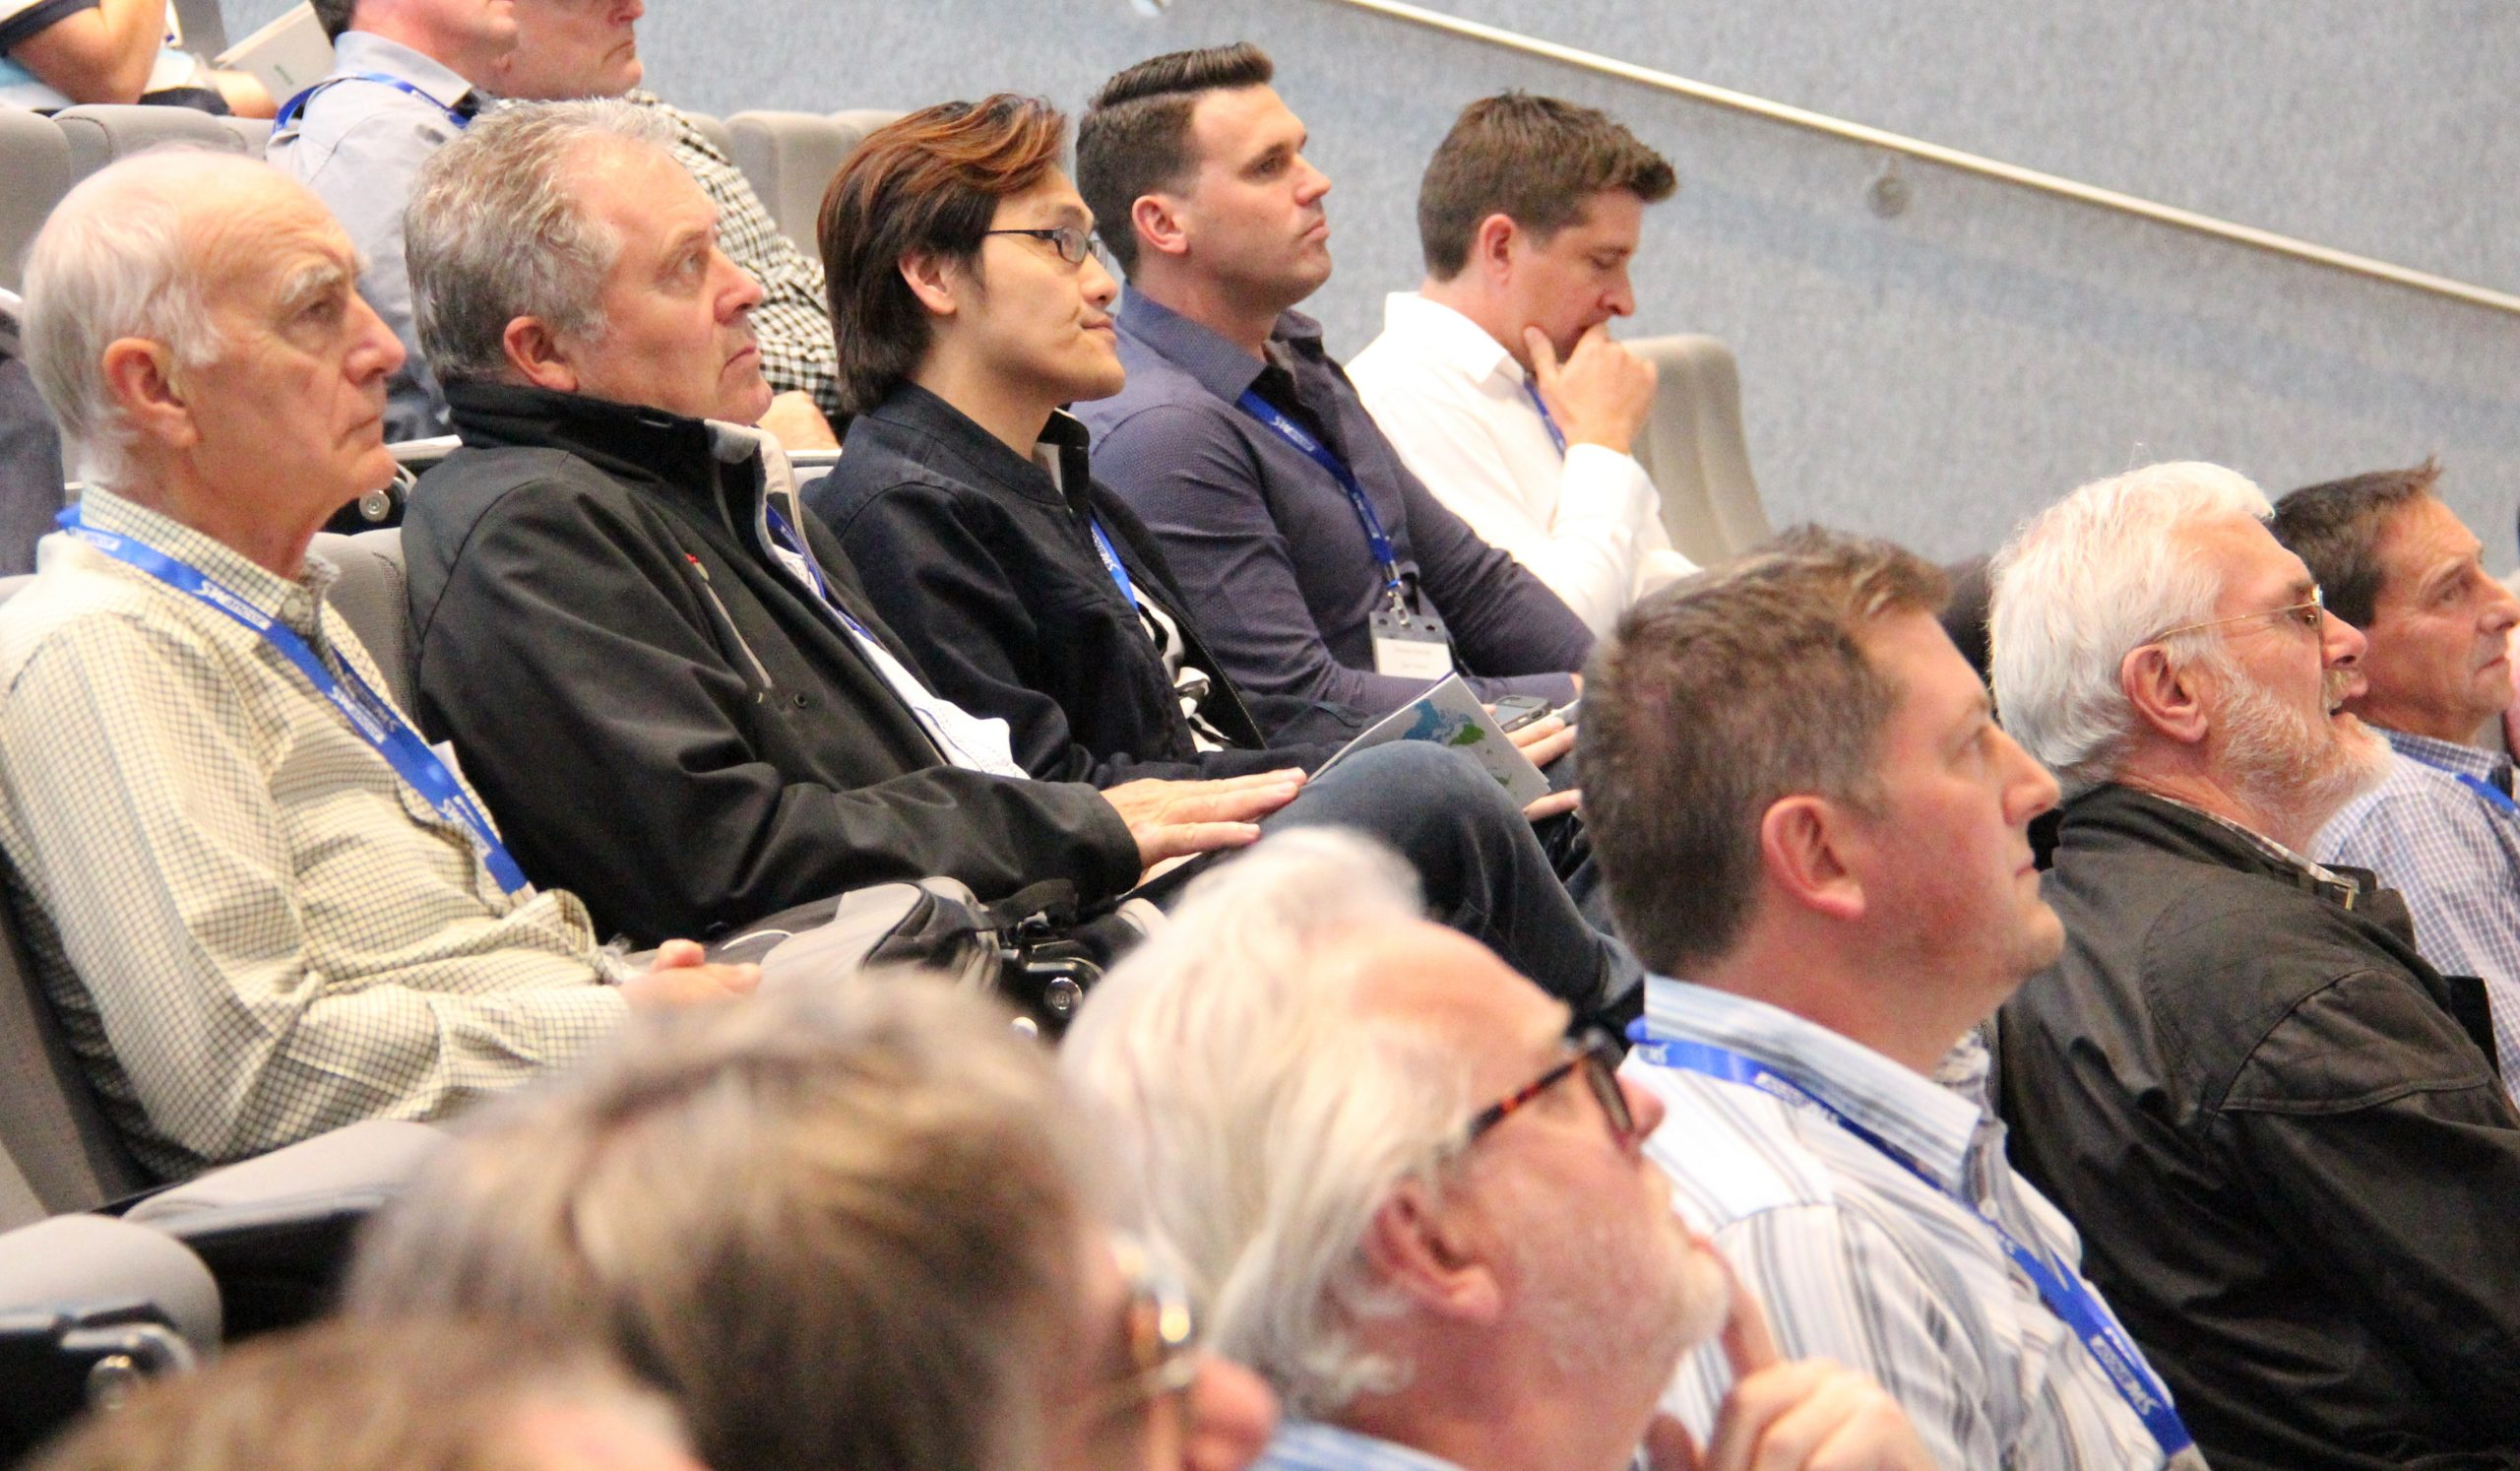 Delegates at the 2018 Composites Conference, Australian Synchrotron